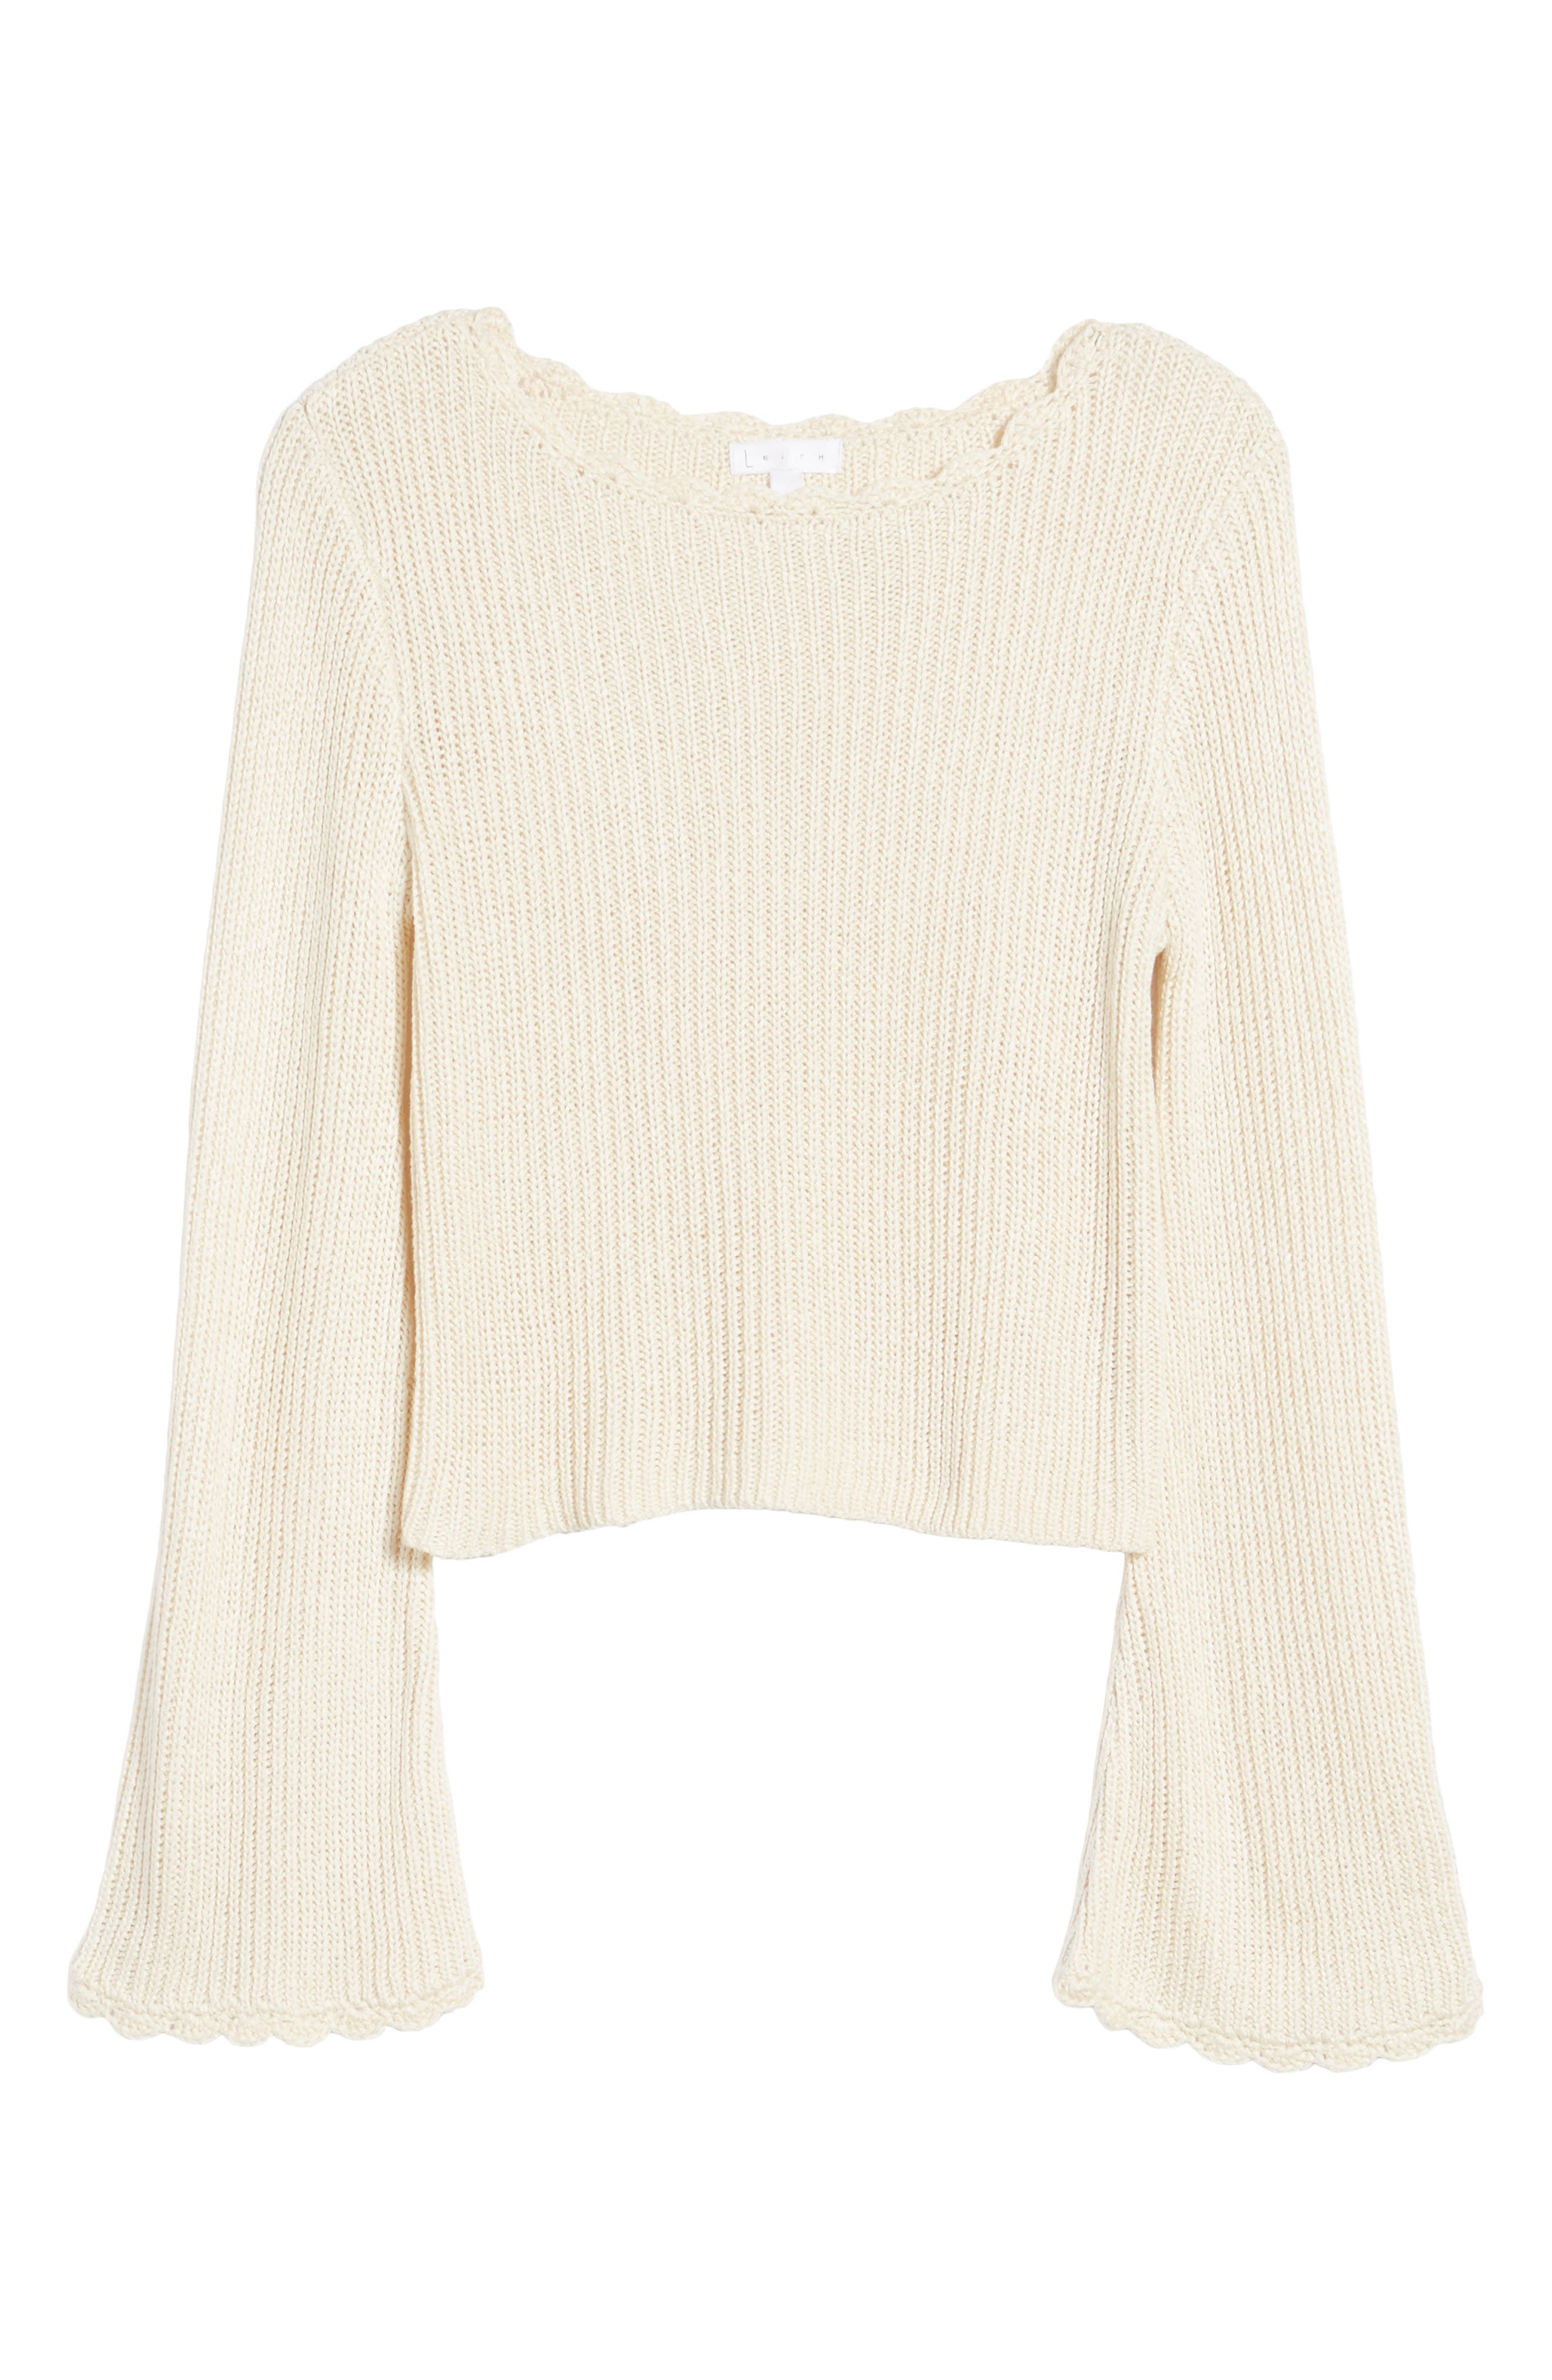 Scallop Edge Sweater,                             Alternate thumbnail 6, color,                             900